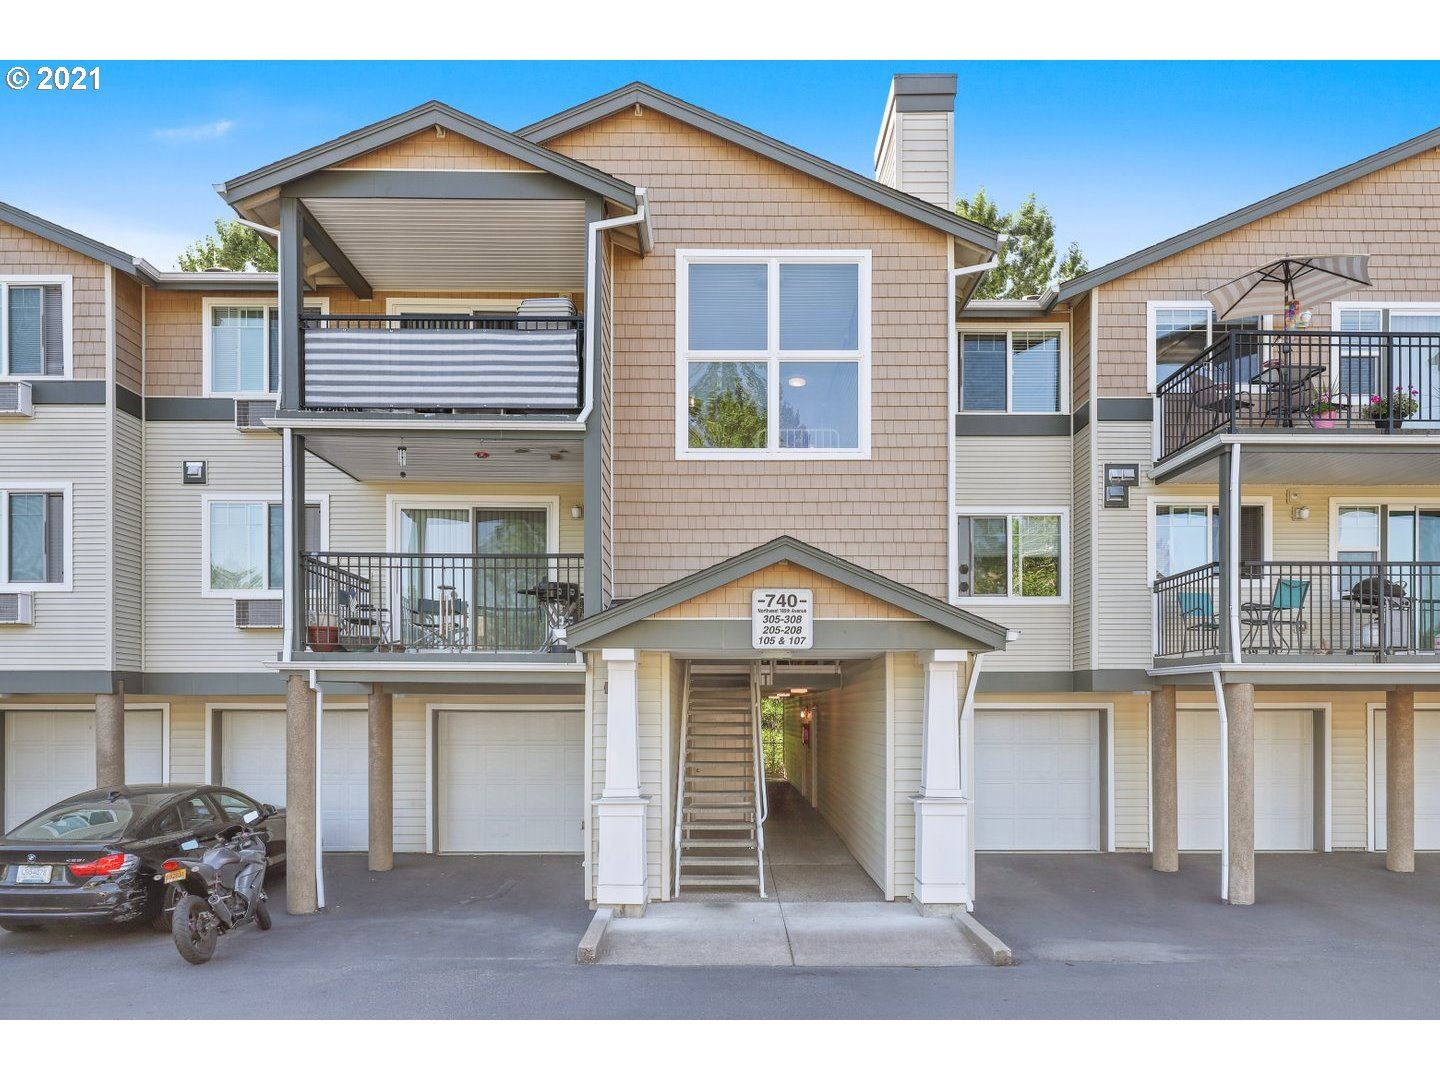 740 NW 185TH AVE #207, Beaverton, OR 97006 - MLS#: 21059229